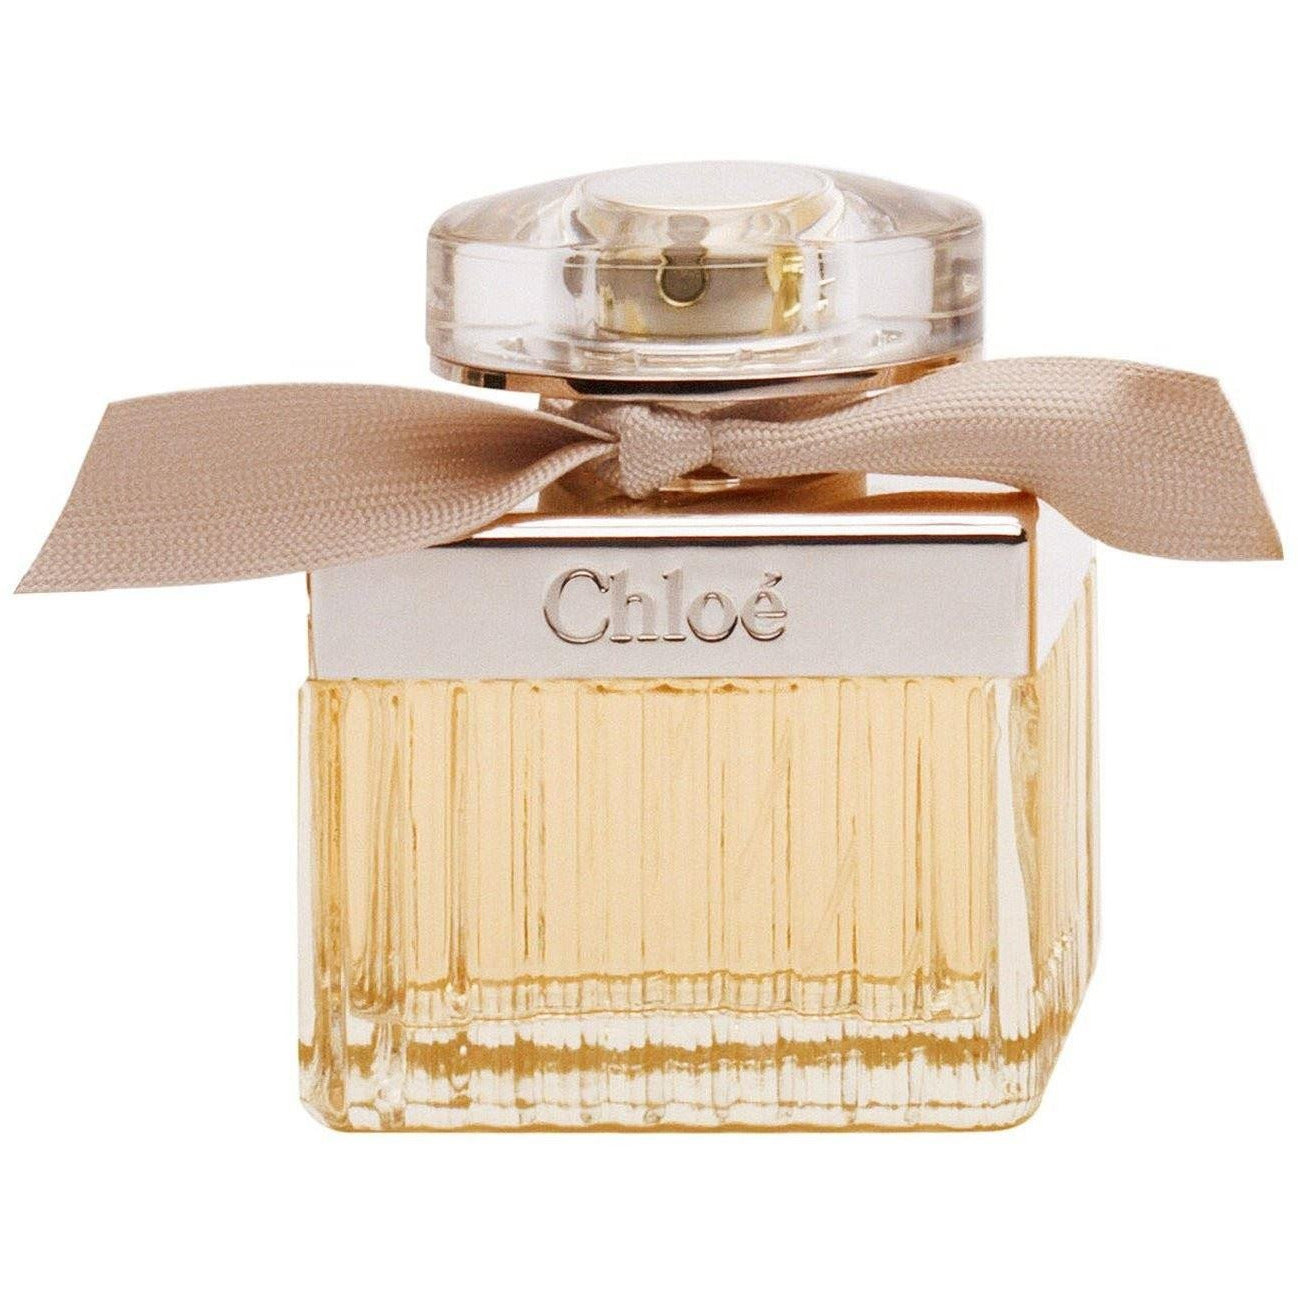 Tester New Chloe 2 Karl 5 Oz Edp Lagerfeld Women Perfume Nvn0wm8